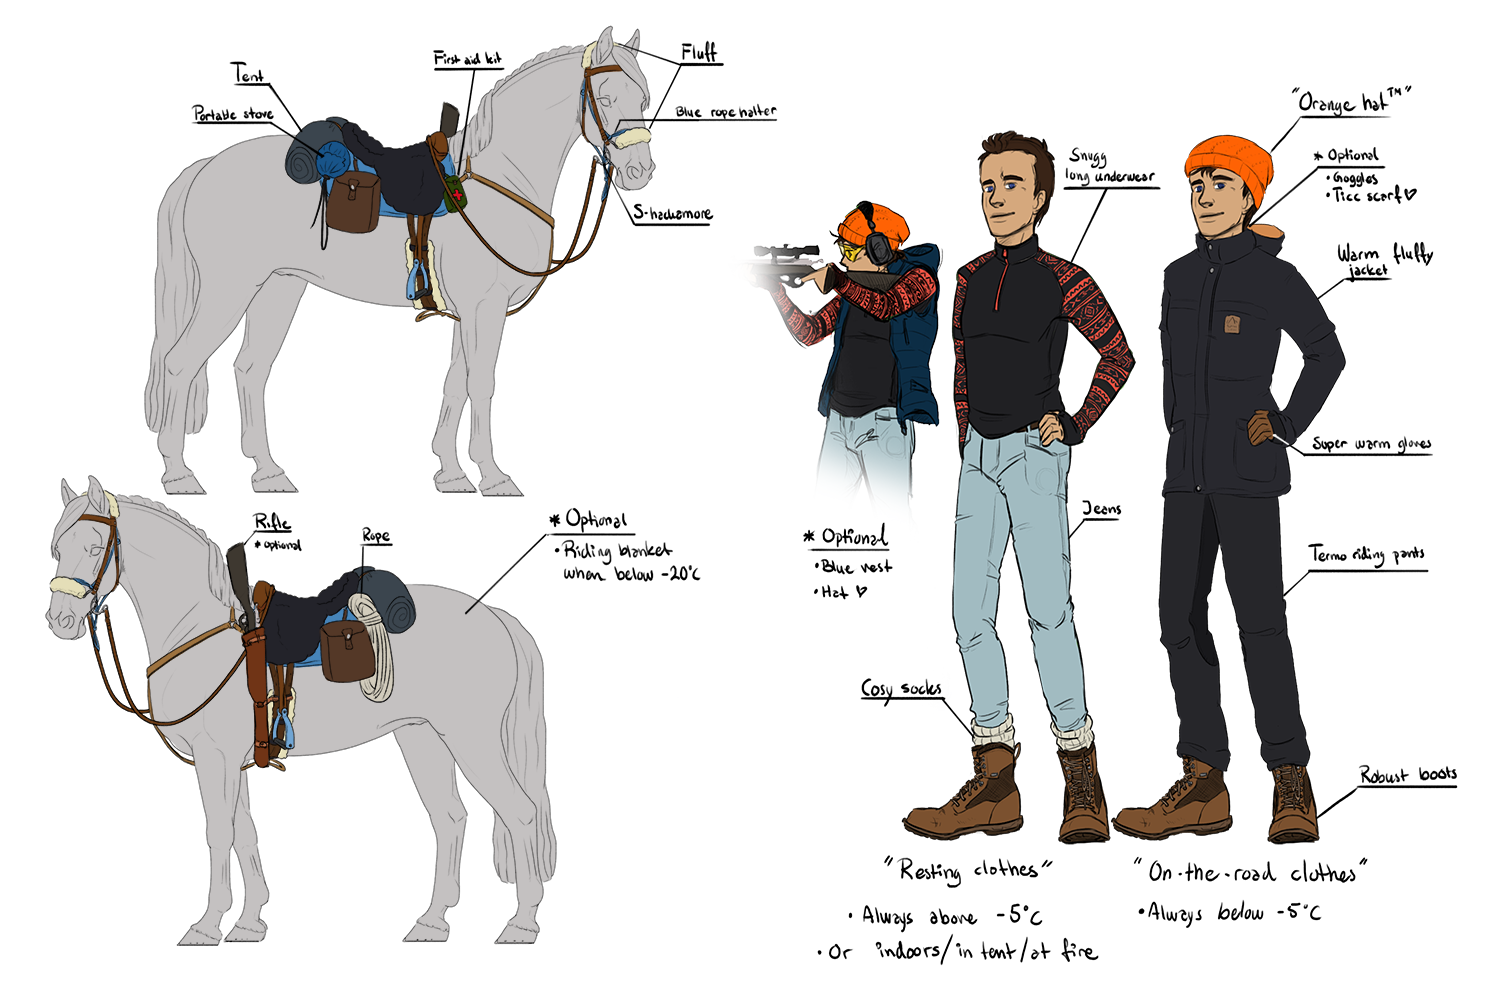 Reference  My characters clothes and tack for the trail.